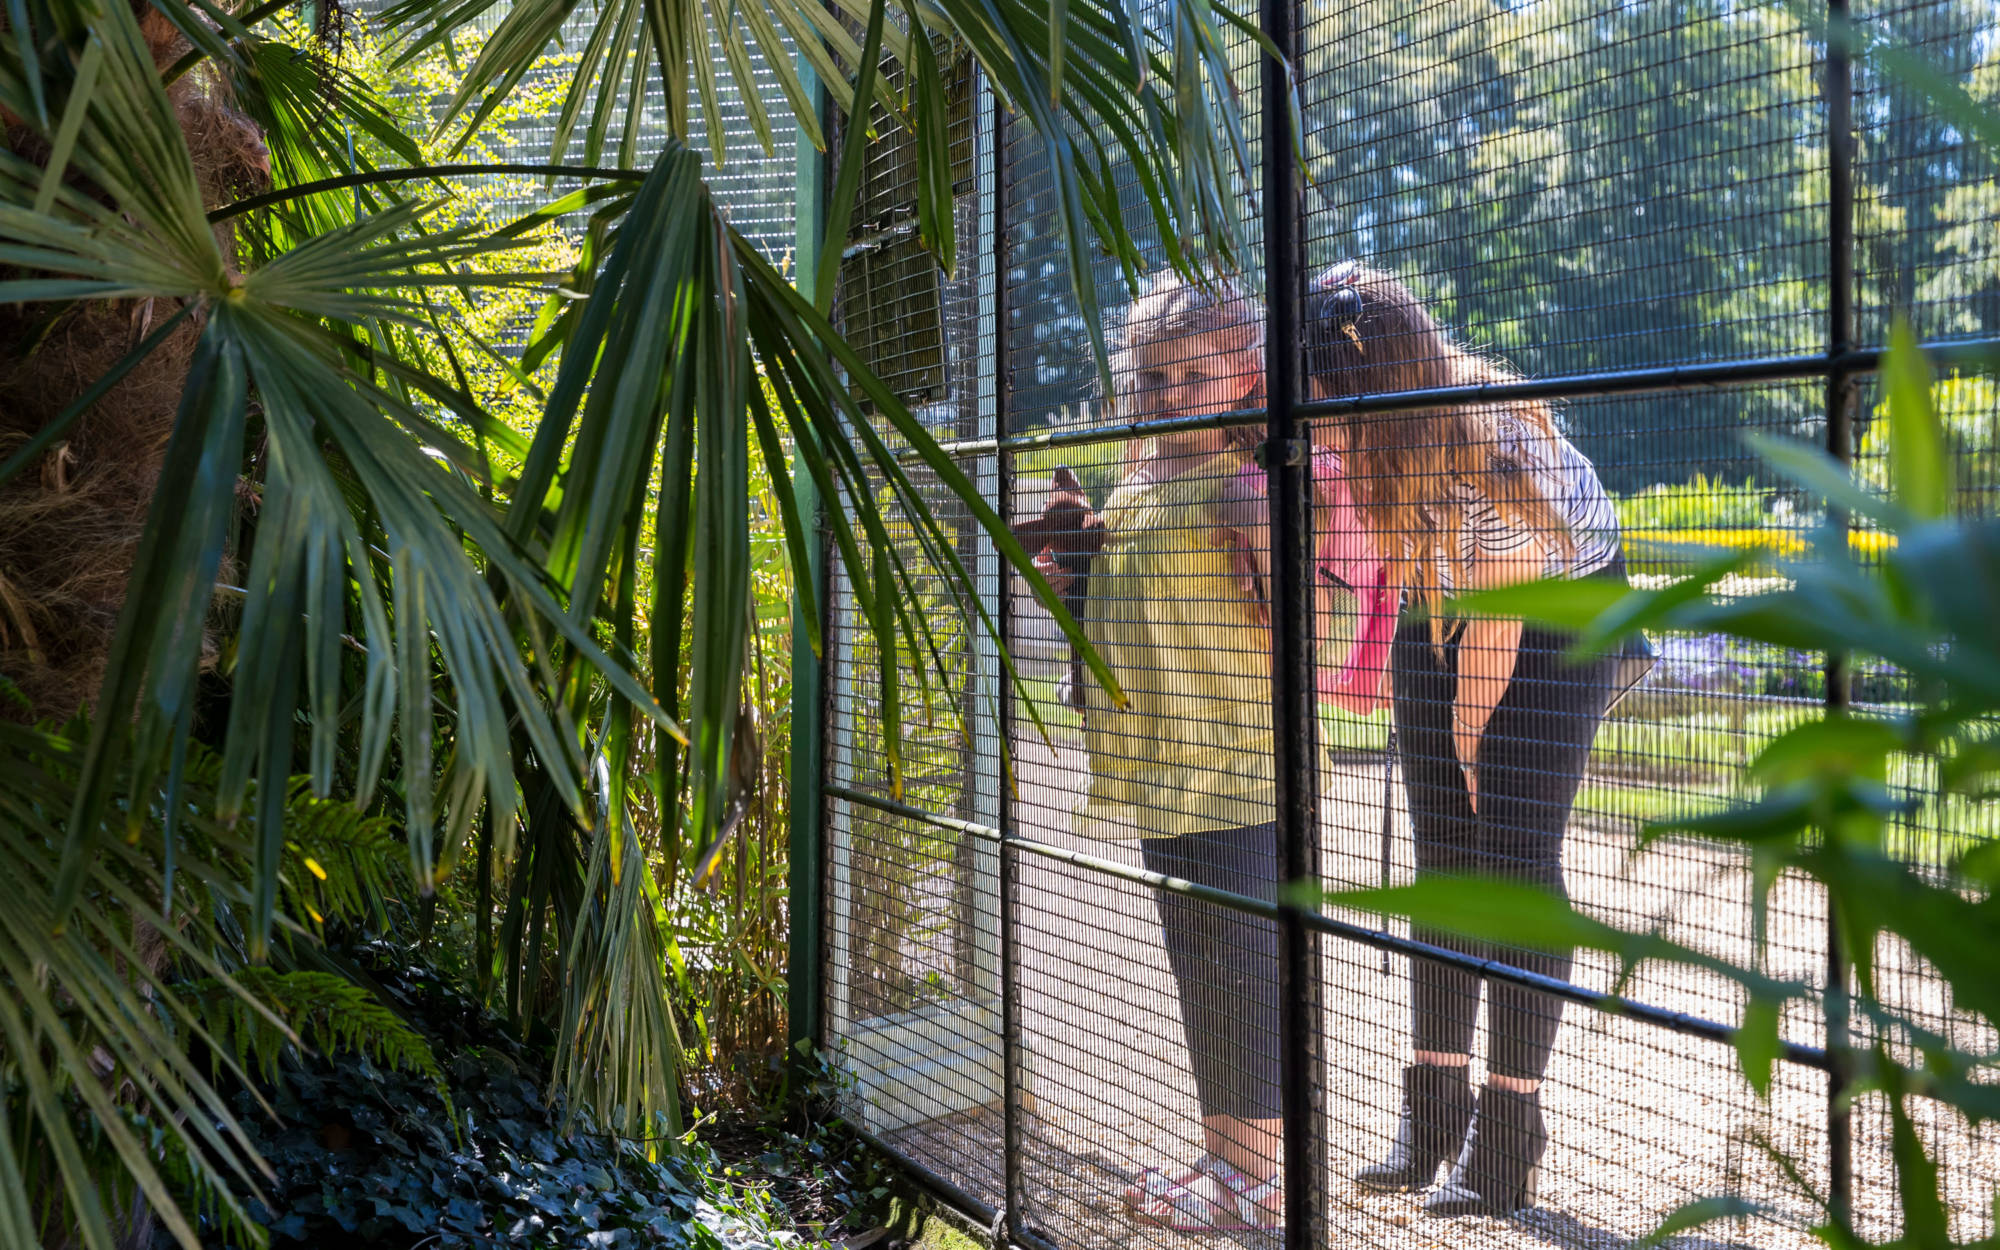 Visitors at the Aviary